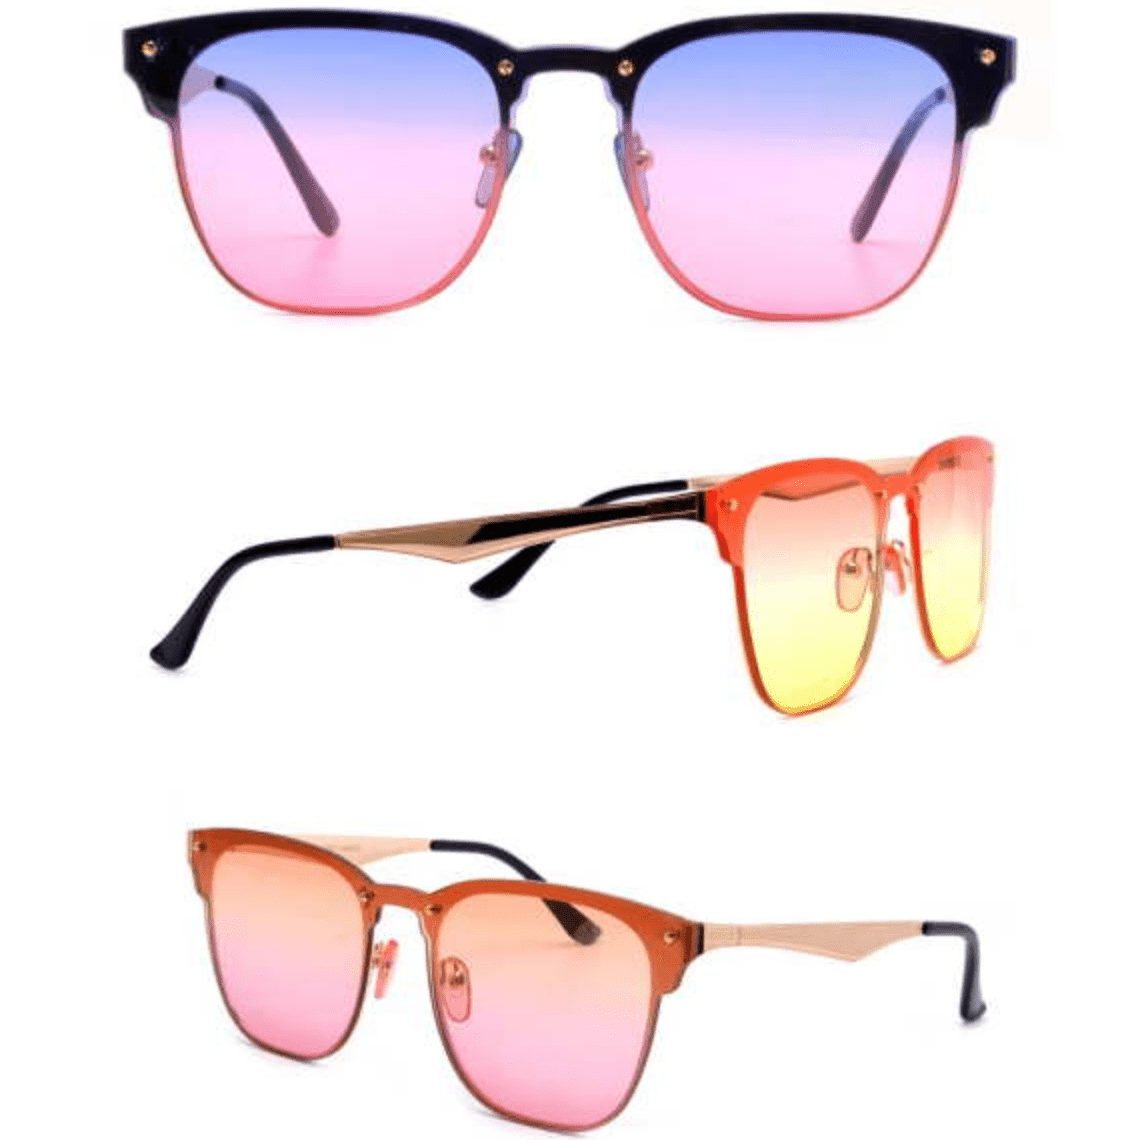 OCEAN LENS, COOL WAYFARER SOHO LOOK, METAL ARMS